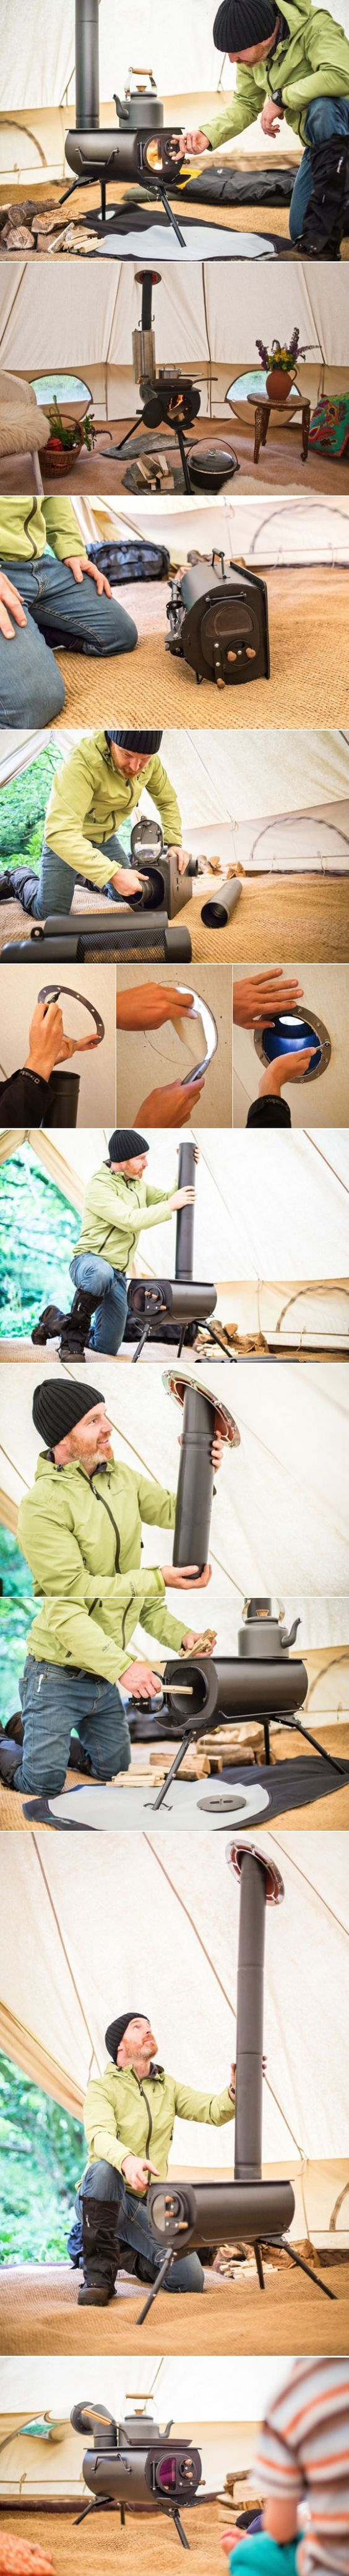 Portable Woodburning Stove Can Be Installed in Tents, Teepees, or Small Cabins